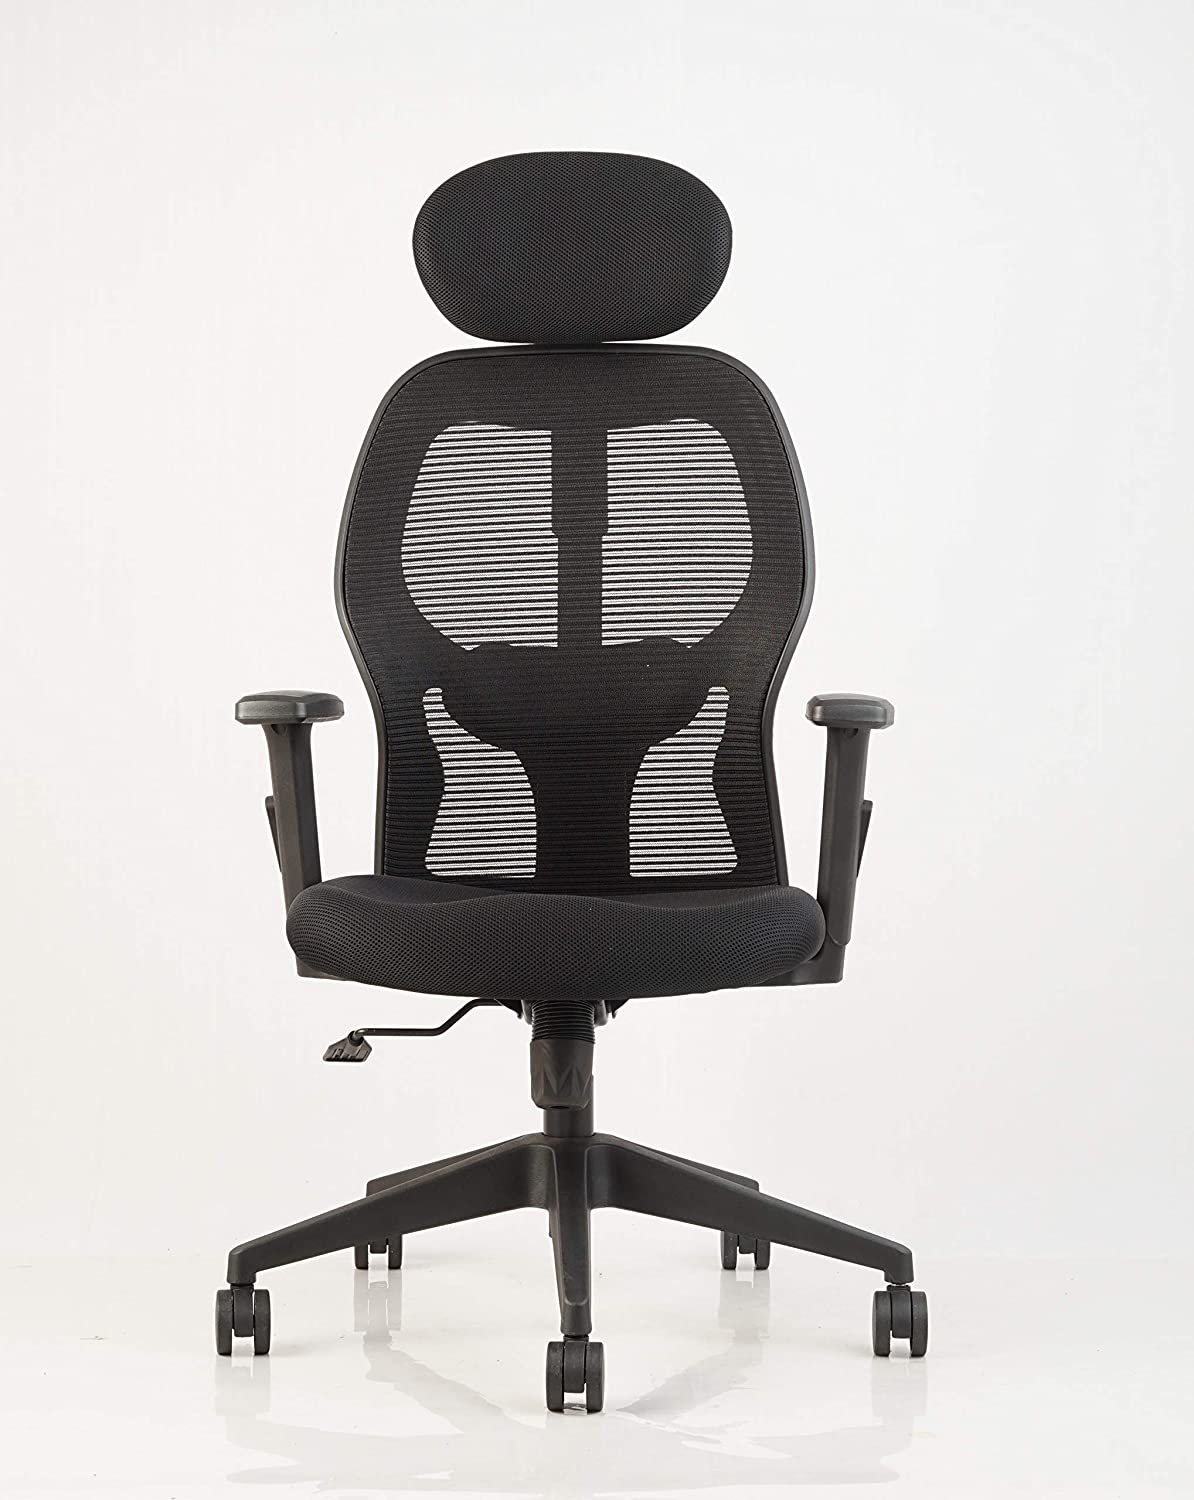 Best office chairs under 15000 in India